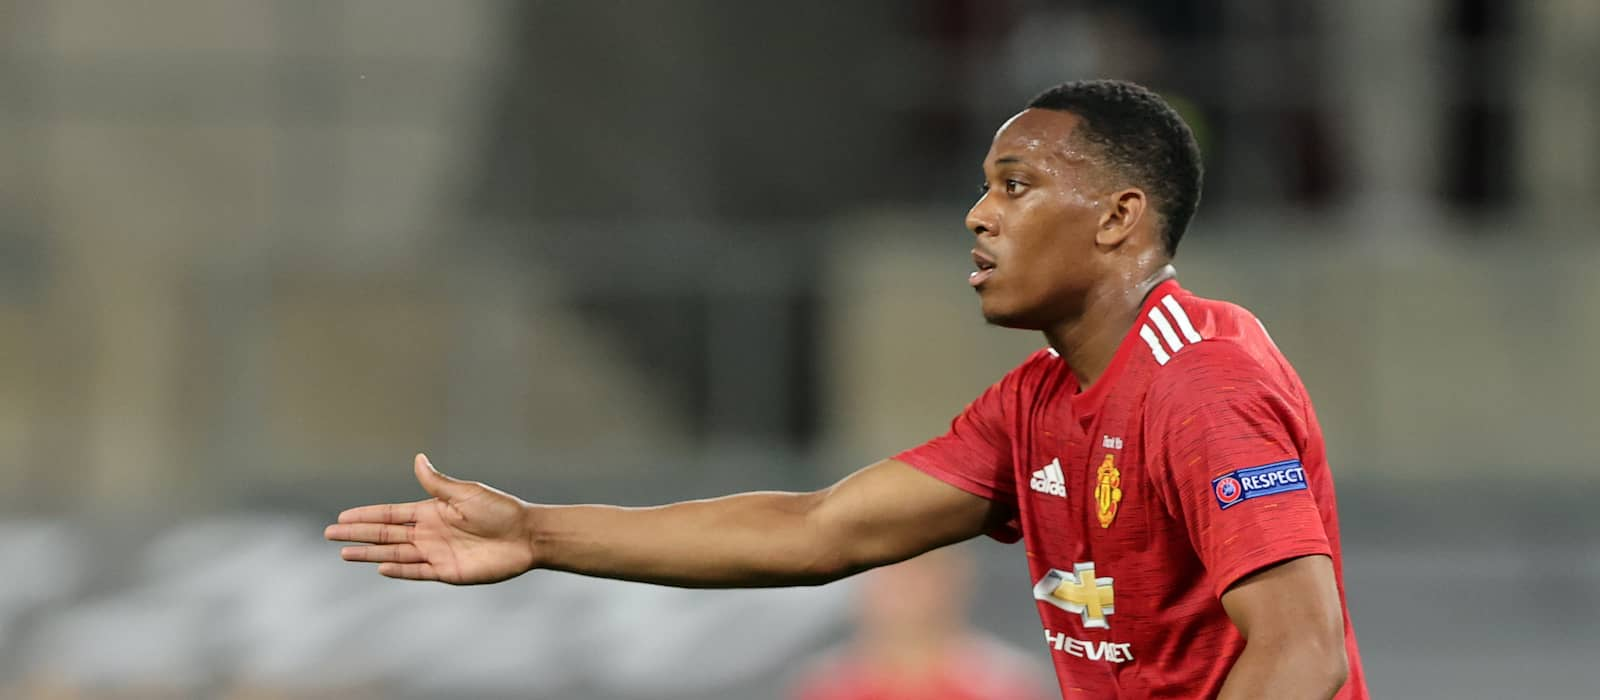 Anthony Martial not obeying team instructions, report claims